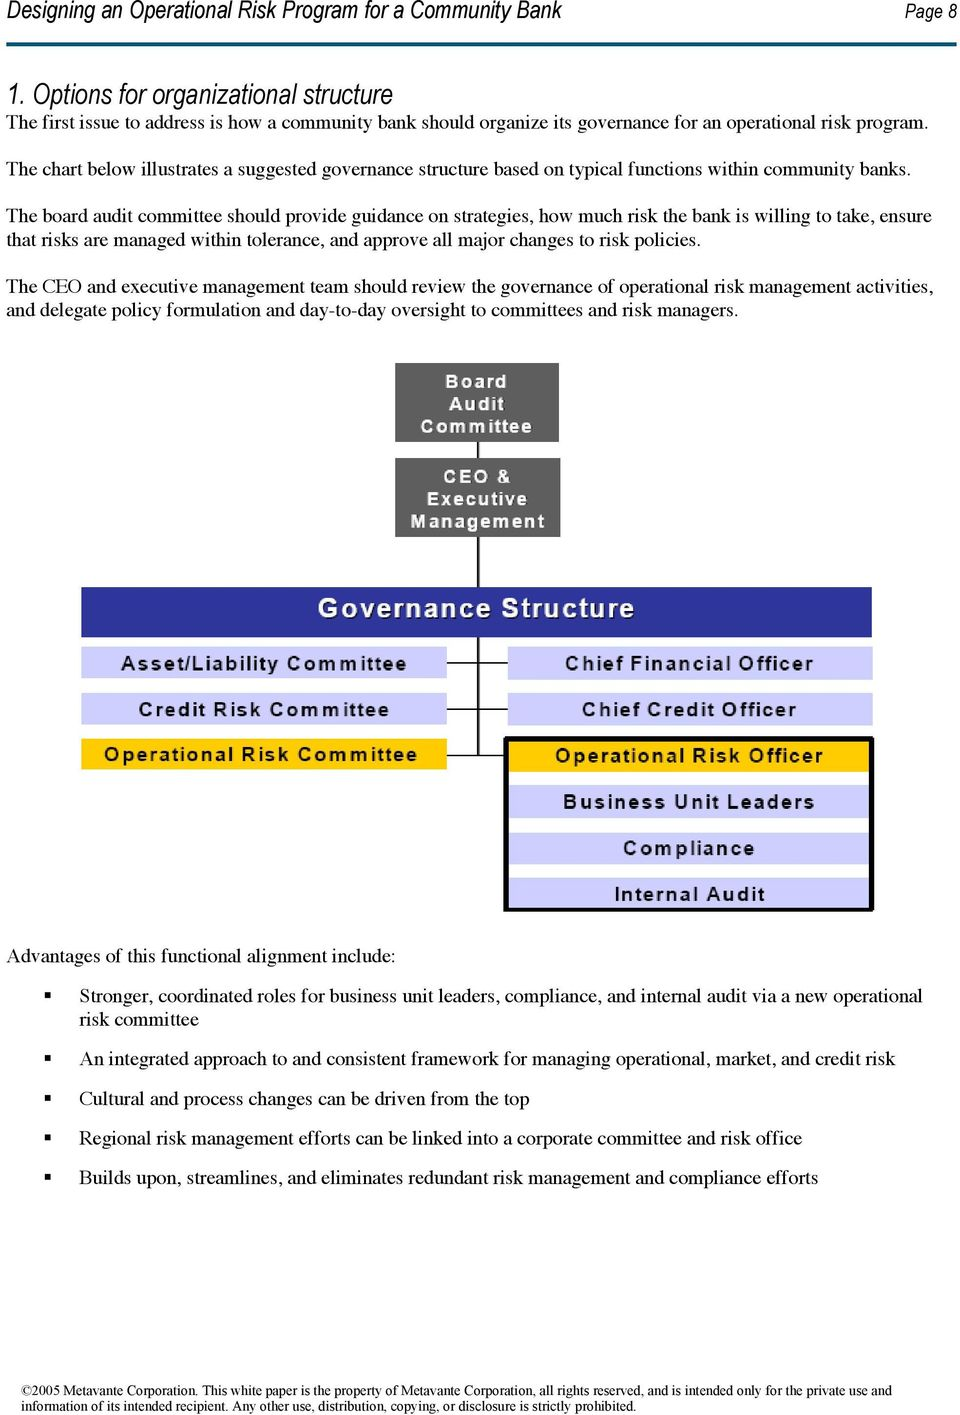 The chart below illustrates a suggested governance structure based on typical functions within community banks.